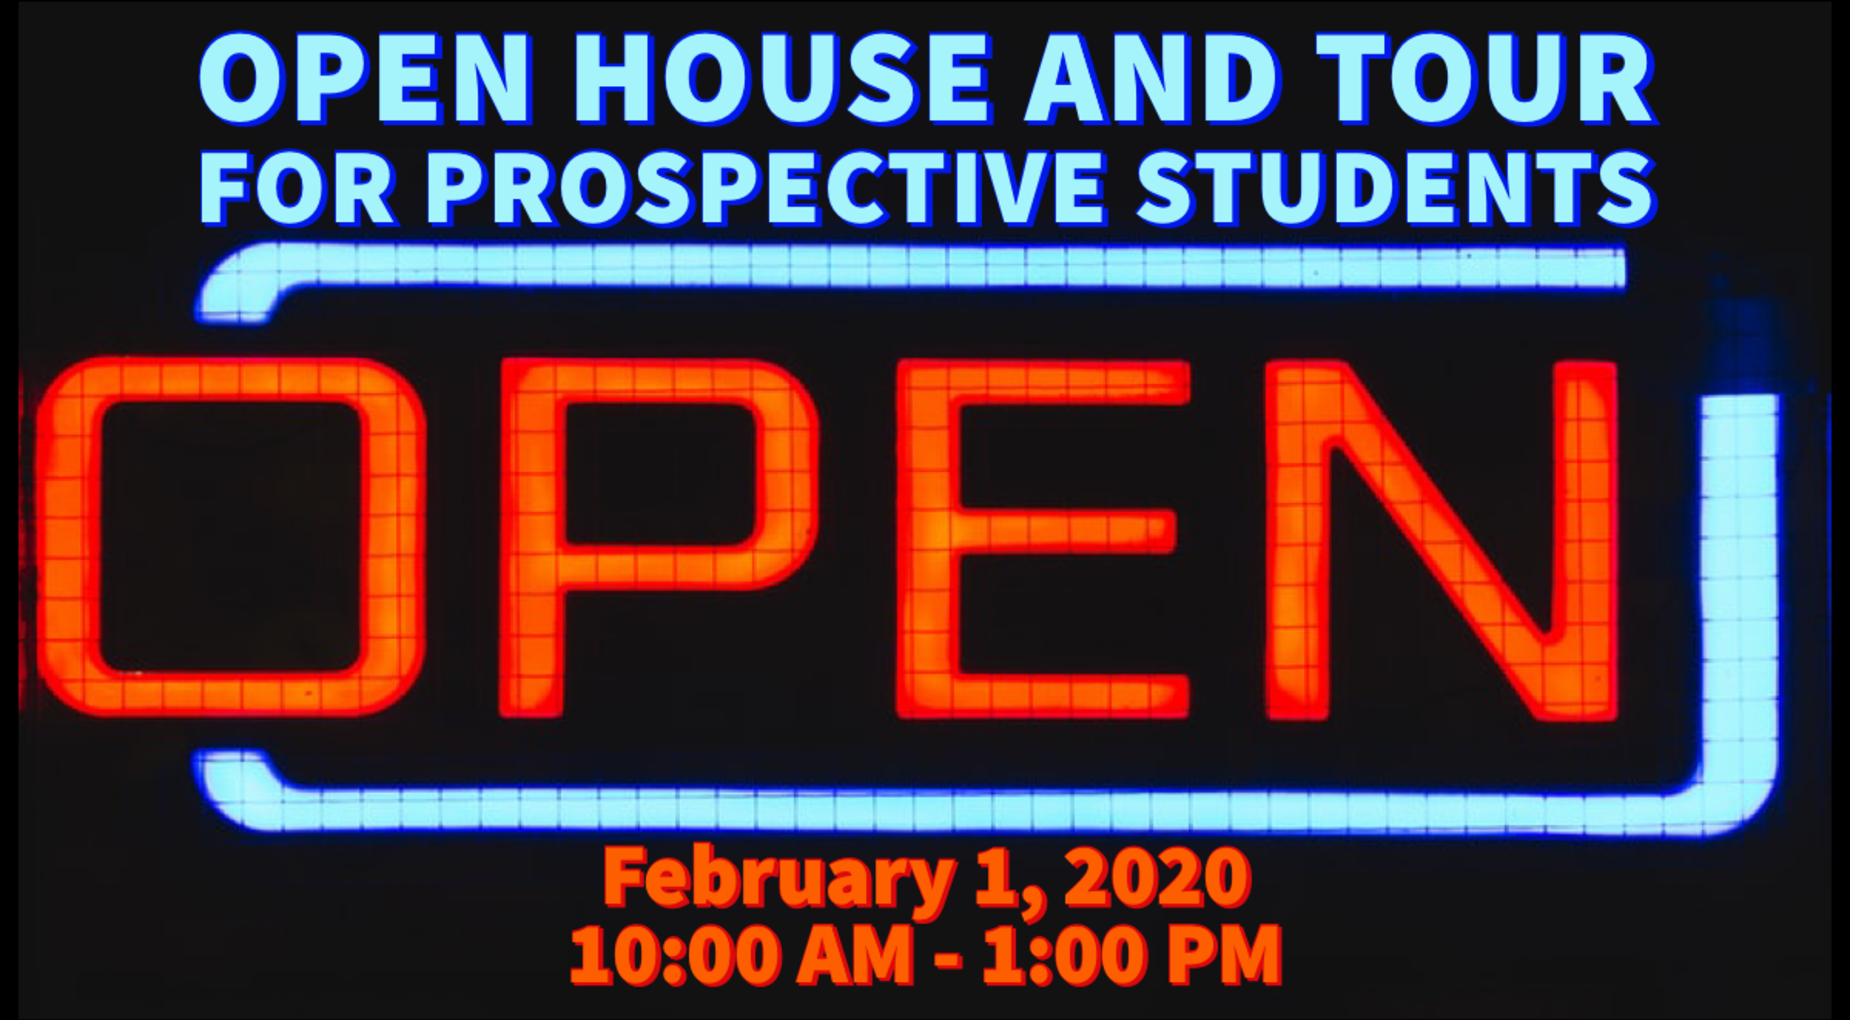 Open House 2020 Banner Image